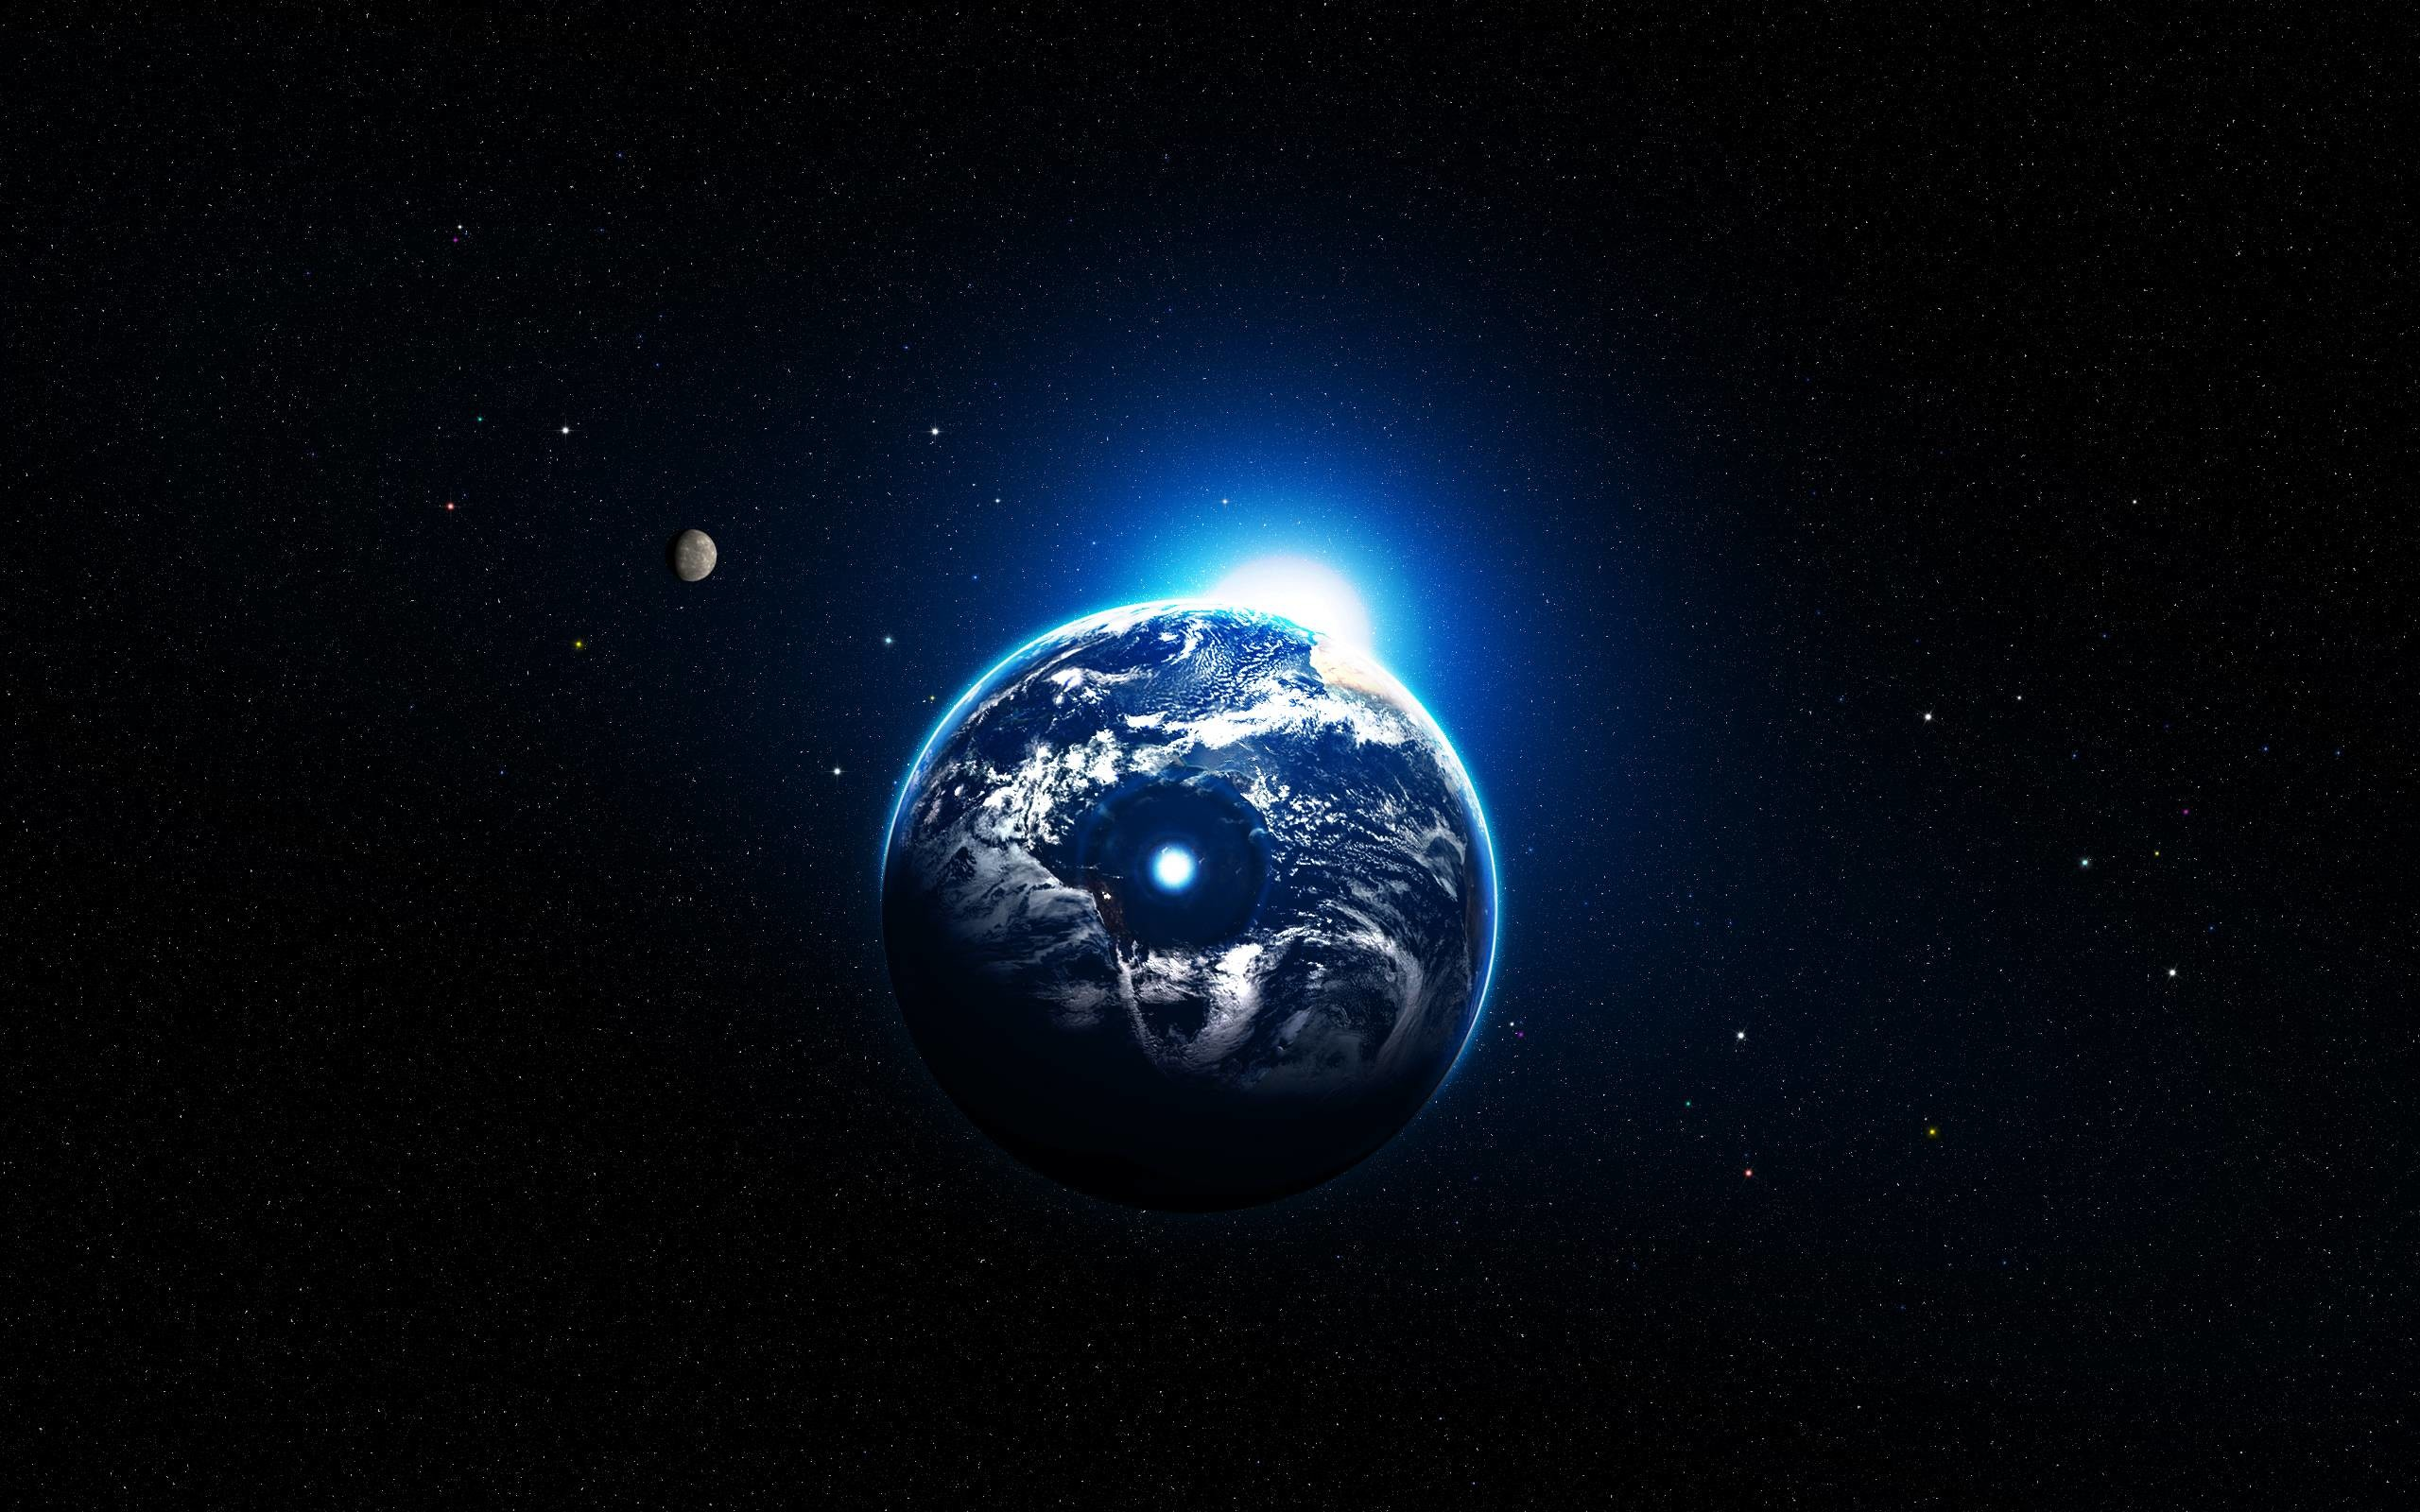 Art Space Earth atmosphere moons moon planet planets space wallpaper